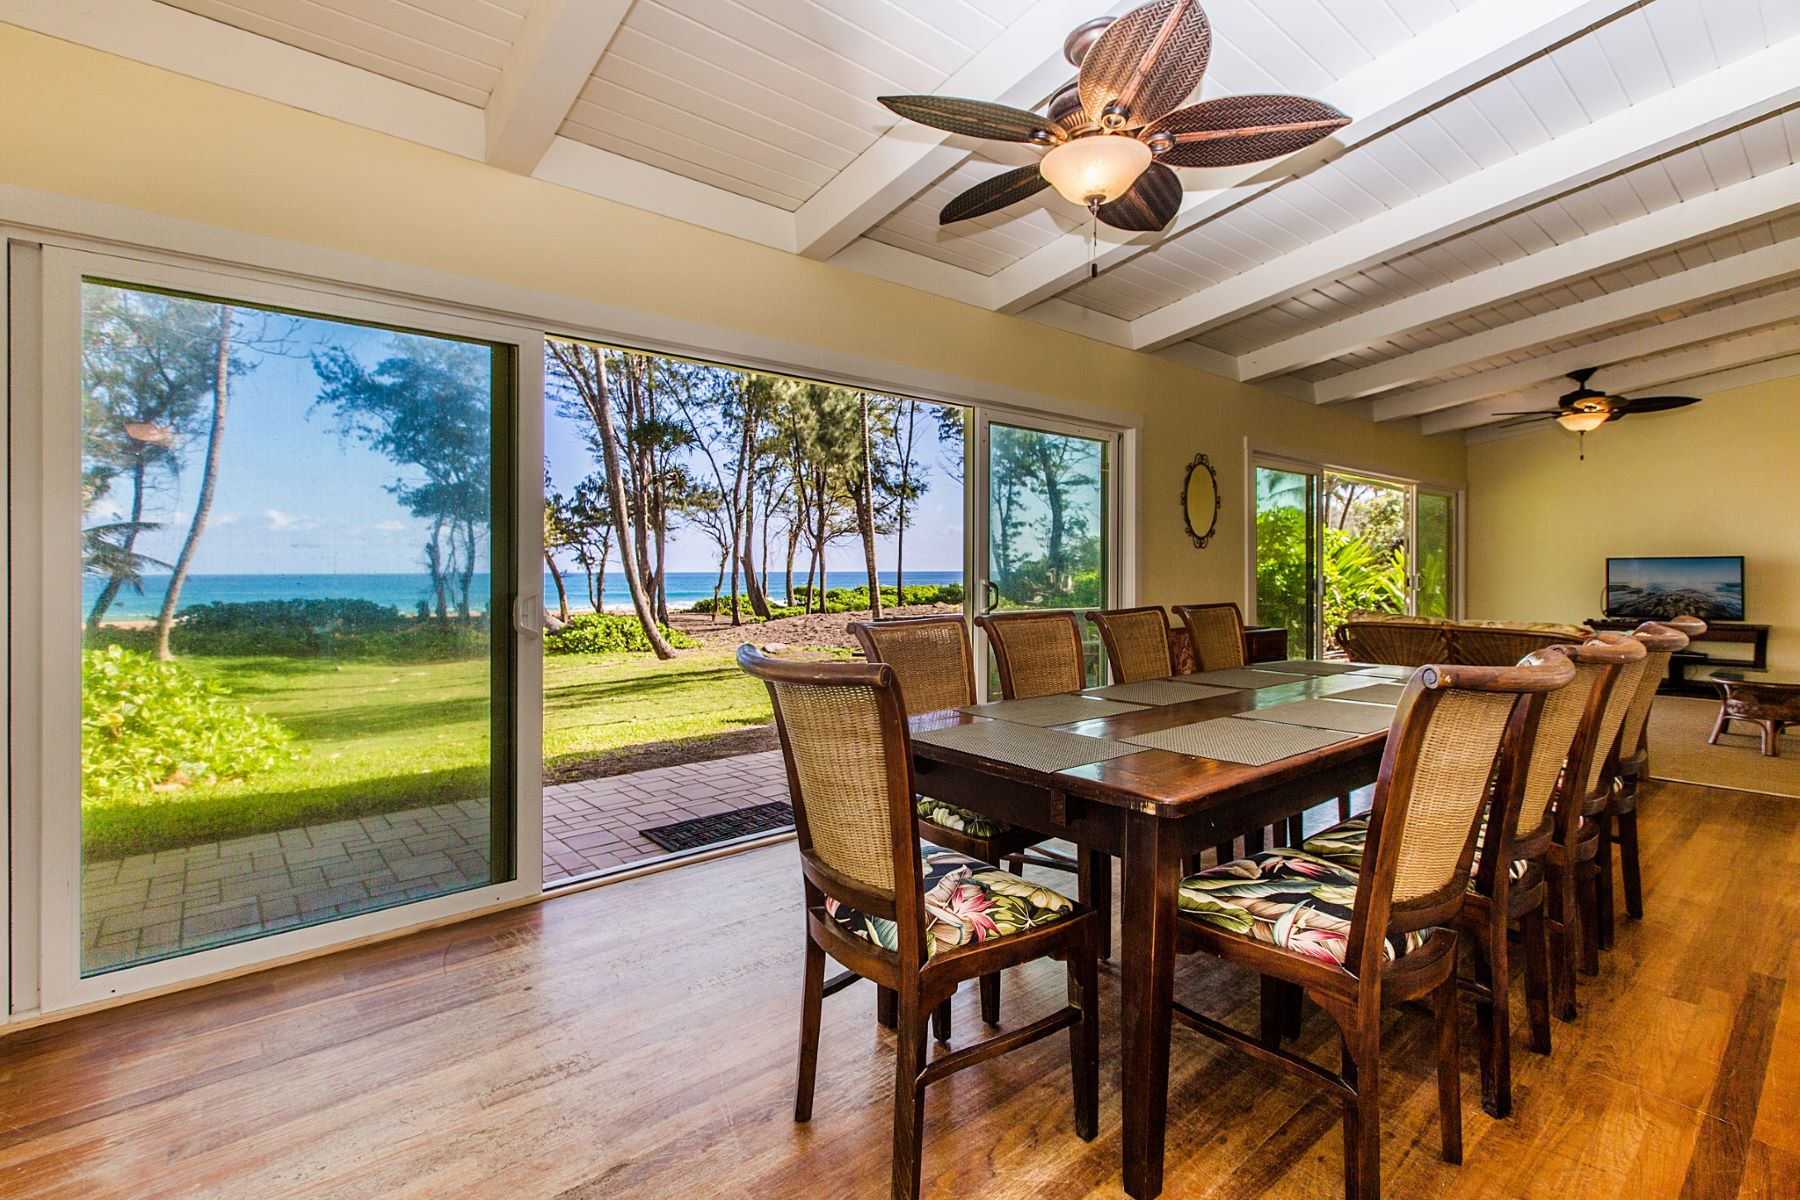 Single Family Home for Rent at Anahola Beach House 4274 Poha Road Anahola Beach House Anahola, Hawaii 96703 United States